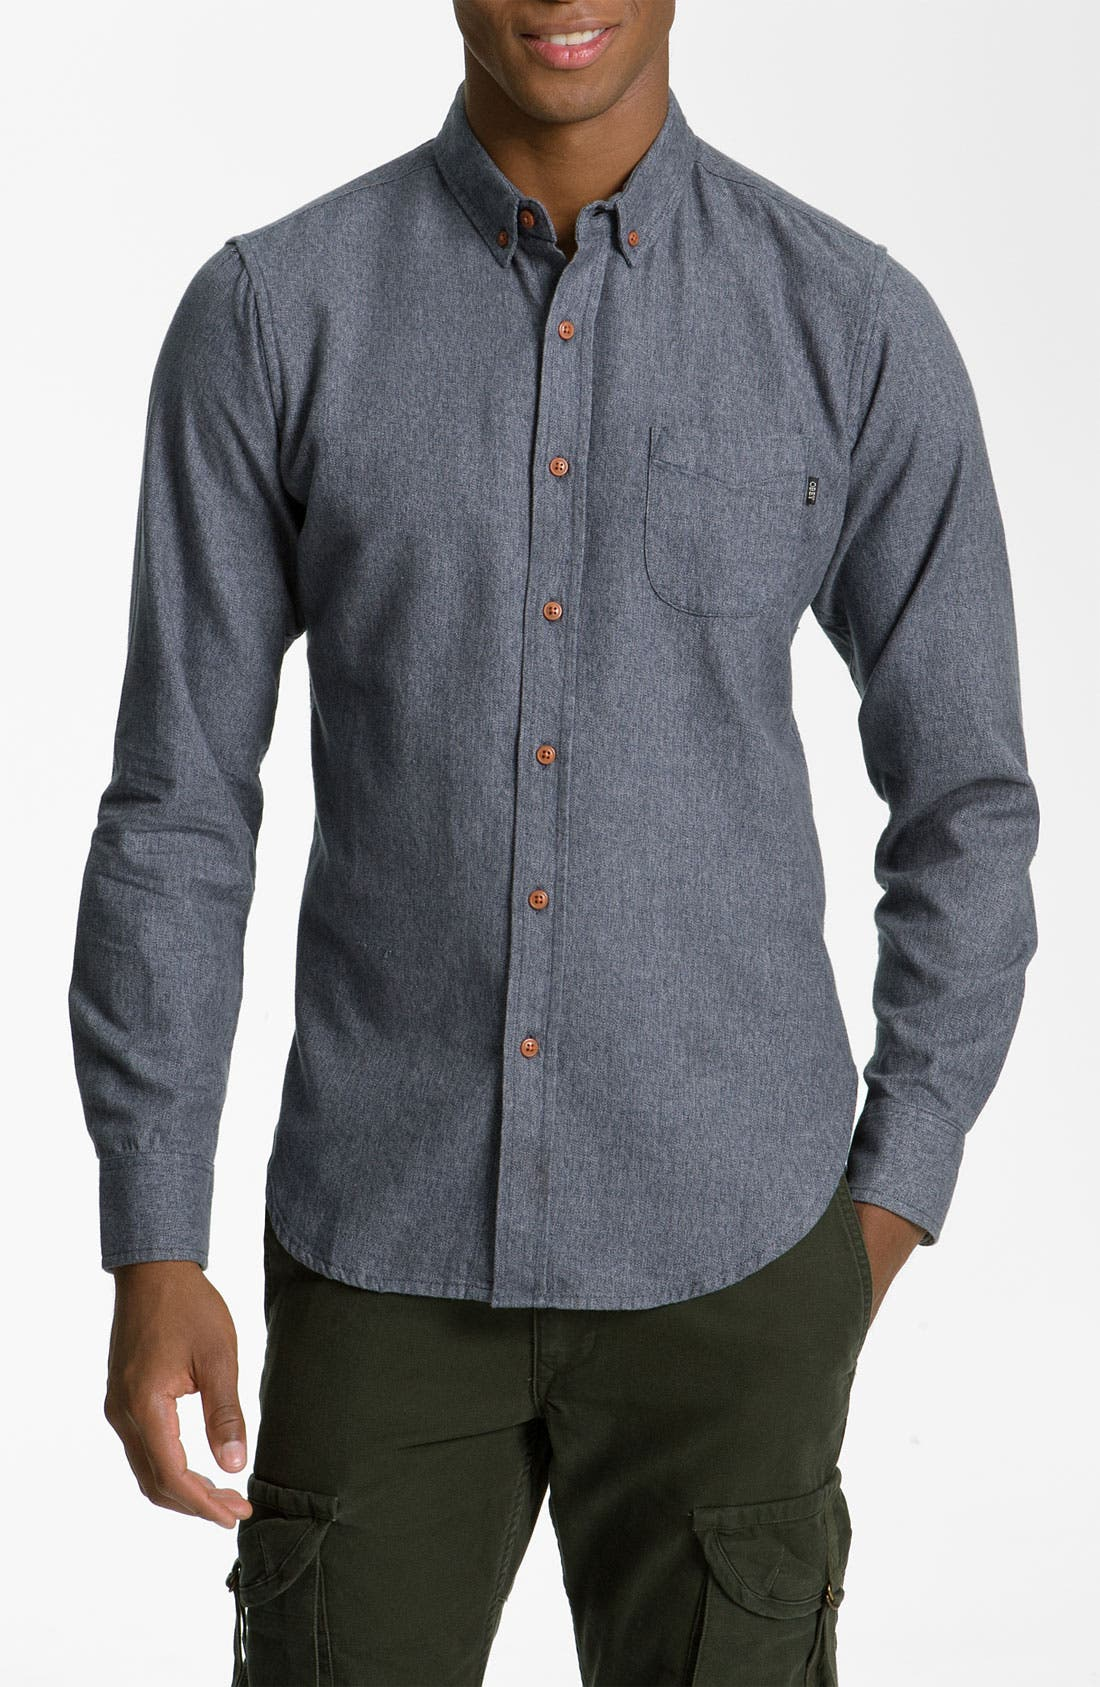 Alternate Image 1 Selected - Obey 'Clark' Woven Shirt